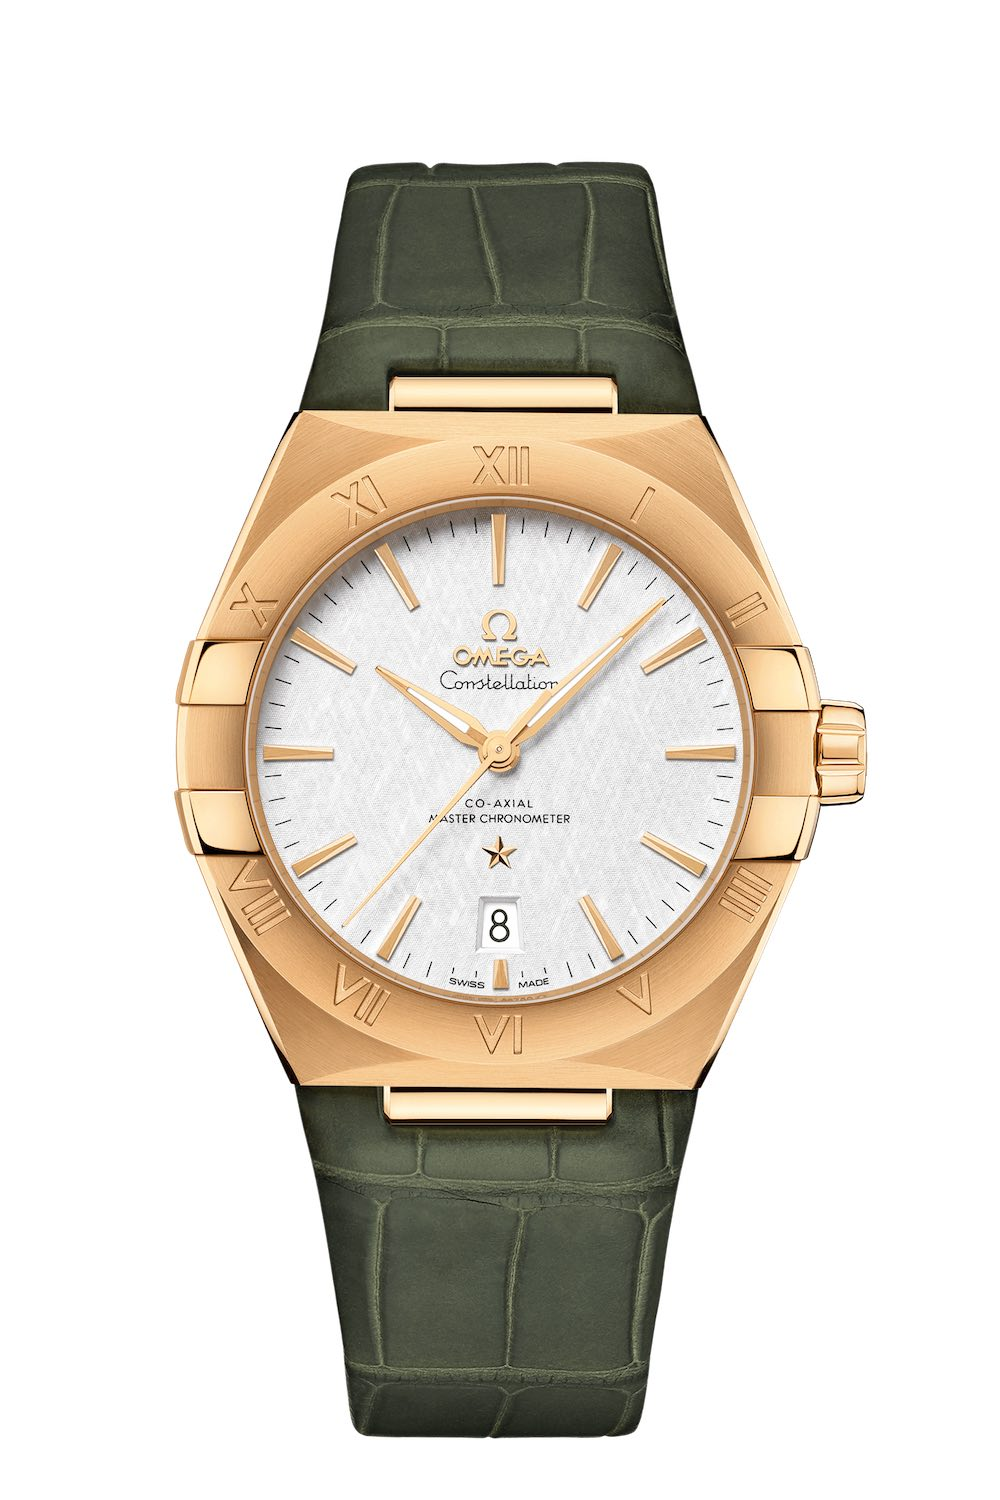 omega-constellation-13153392002002-1-product-zoom